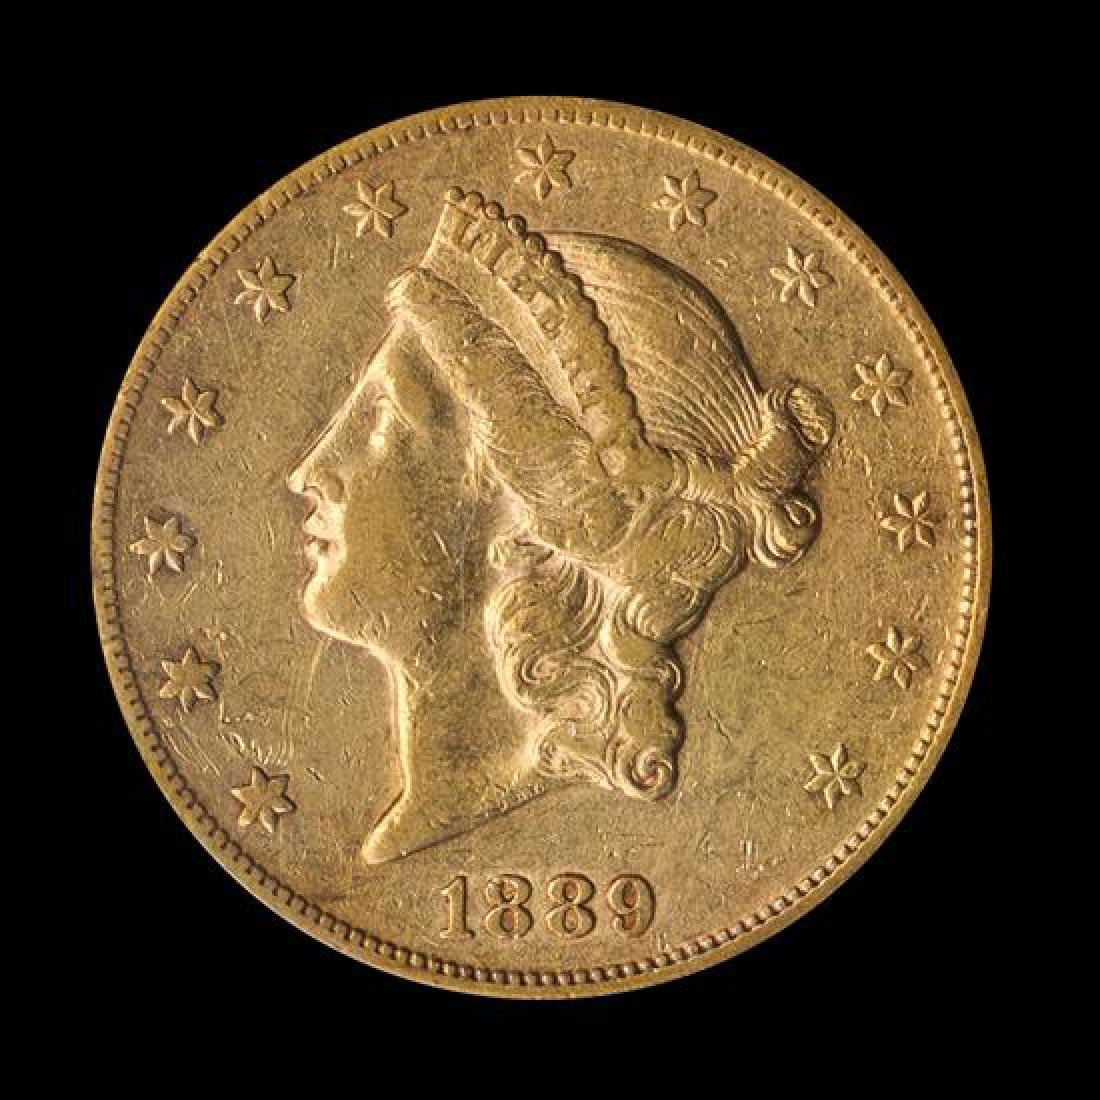 A United States 1889-CC Liberty Head $20 Gold Coin